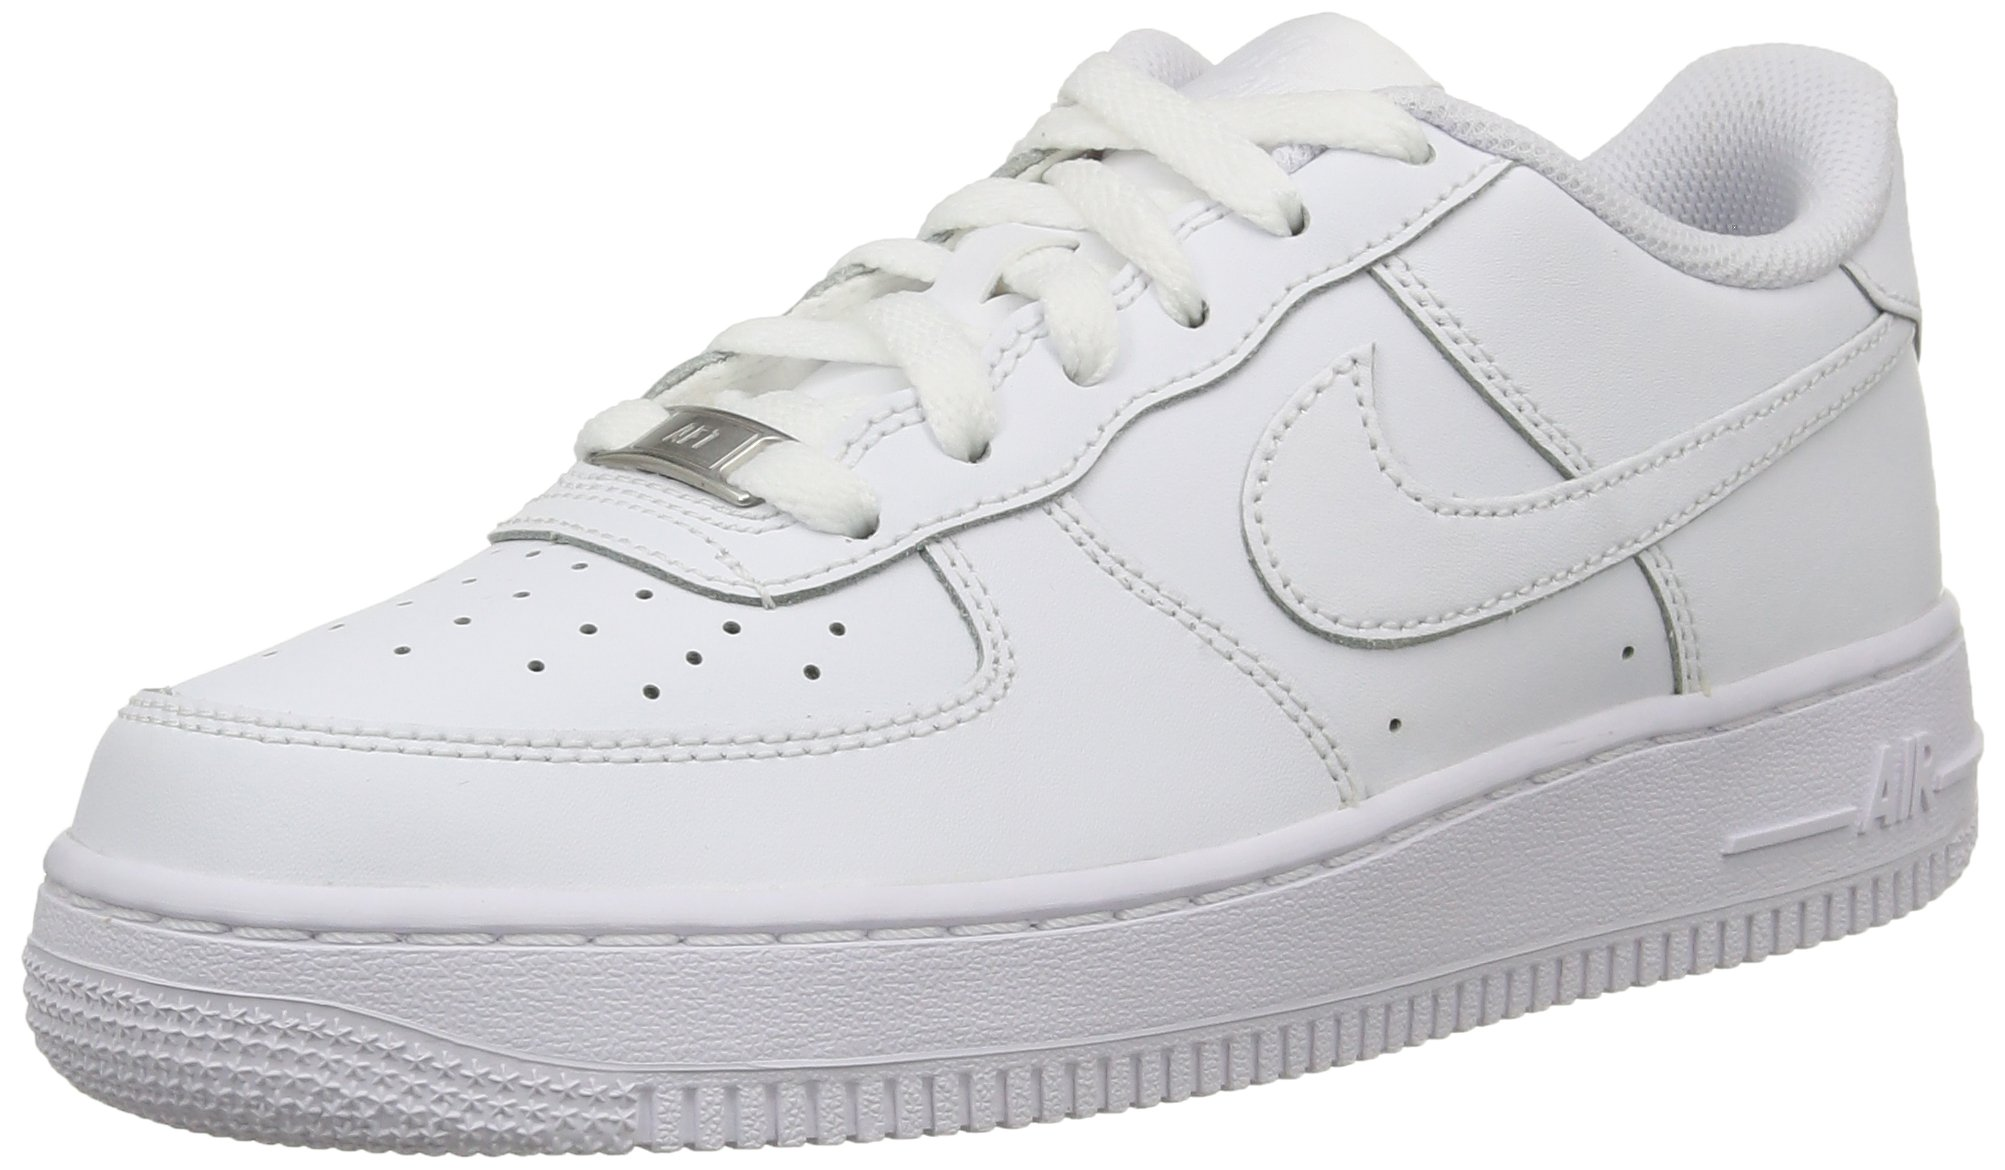 Nike Air Force 1 Low GS All White Youth Lifestyle Sneakers New All White - 5